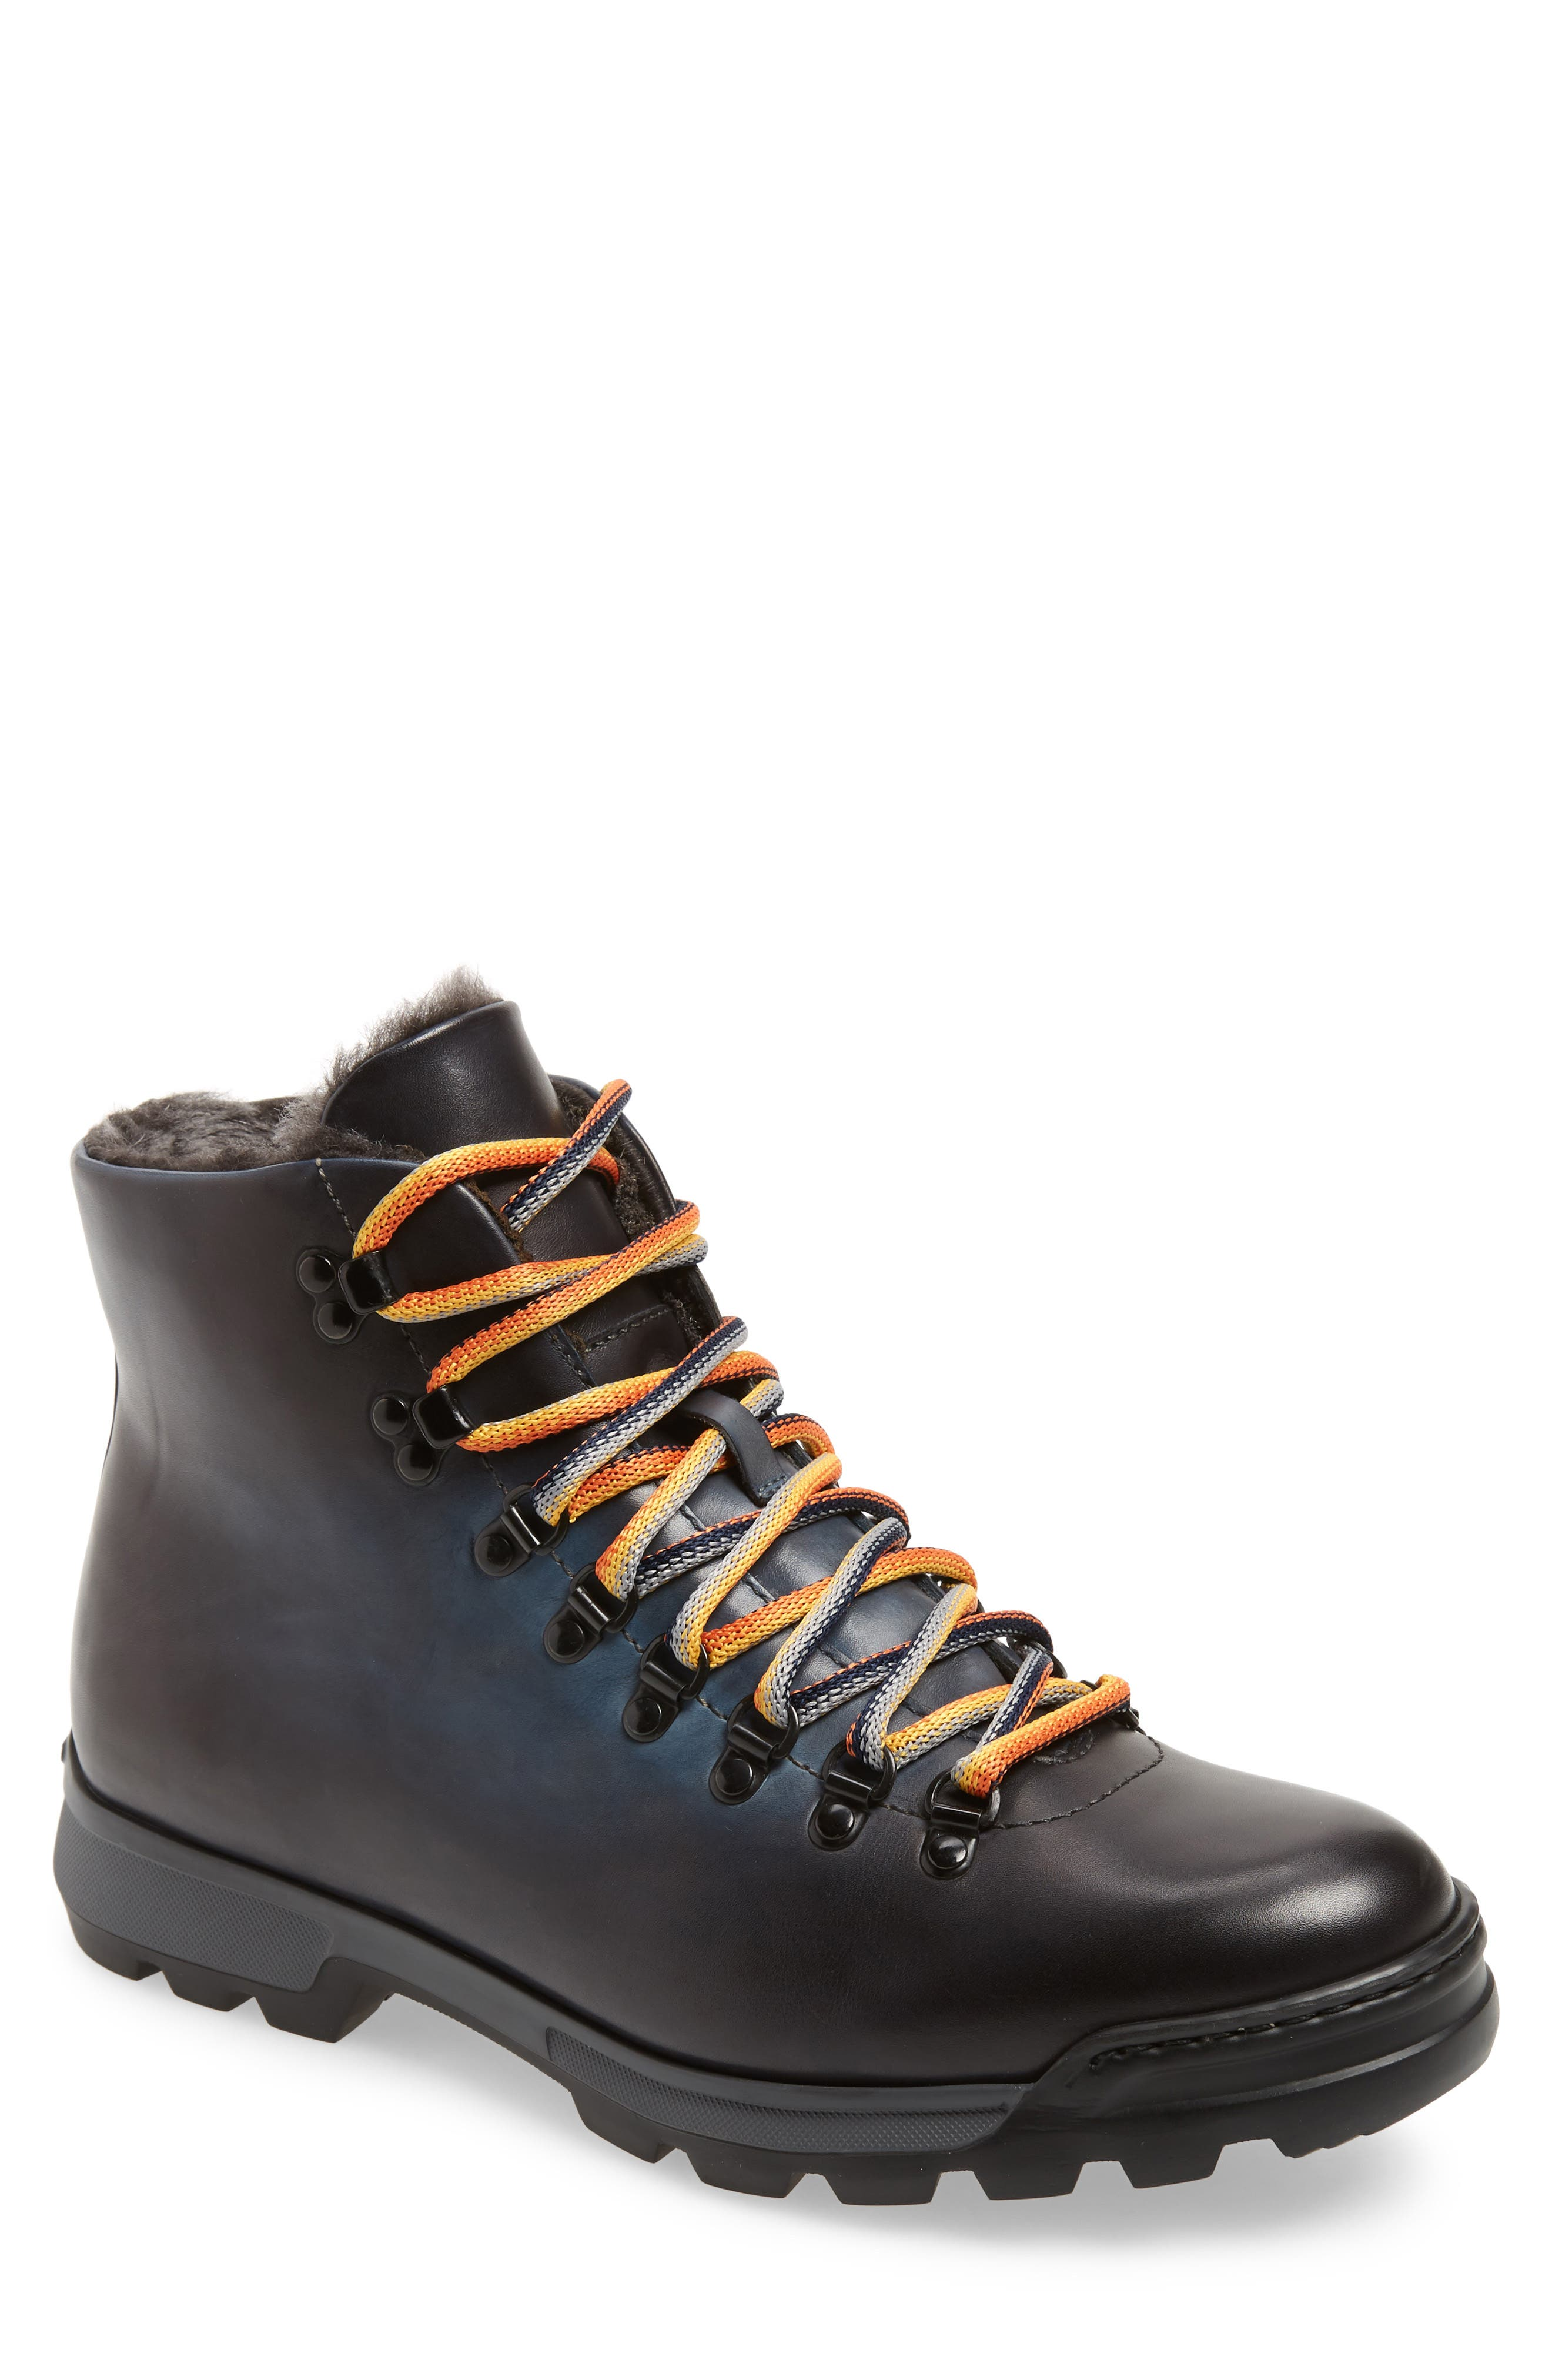 Oberon Genuine Shearling Lace-Up Hiking Boot,                         Main,                         color, NAVY LEATHER